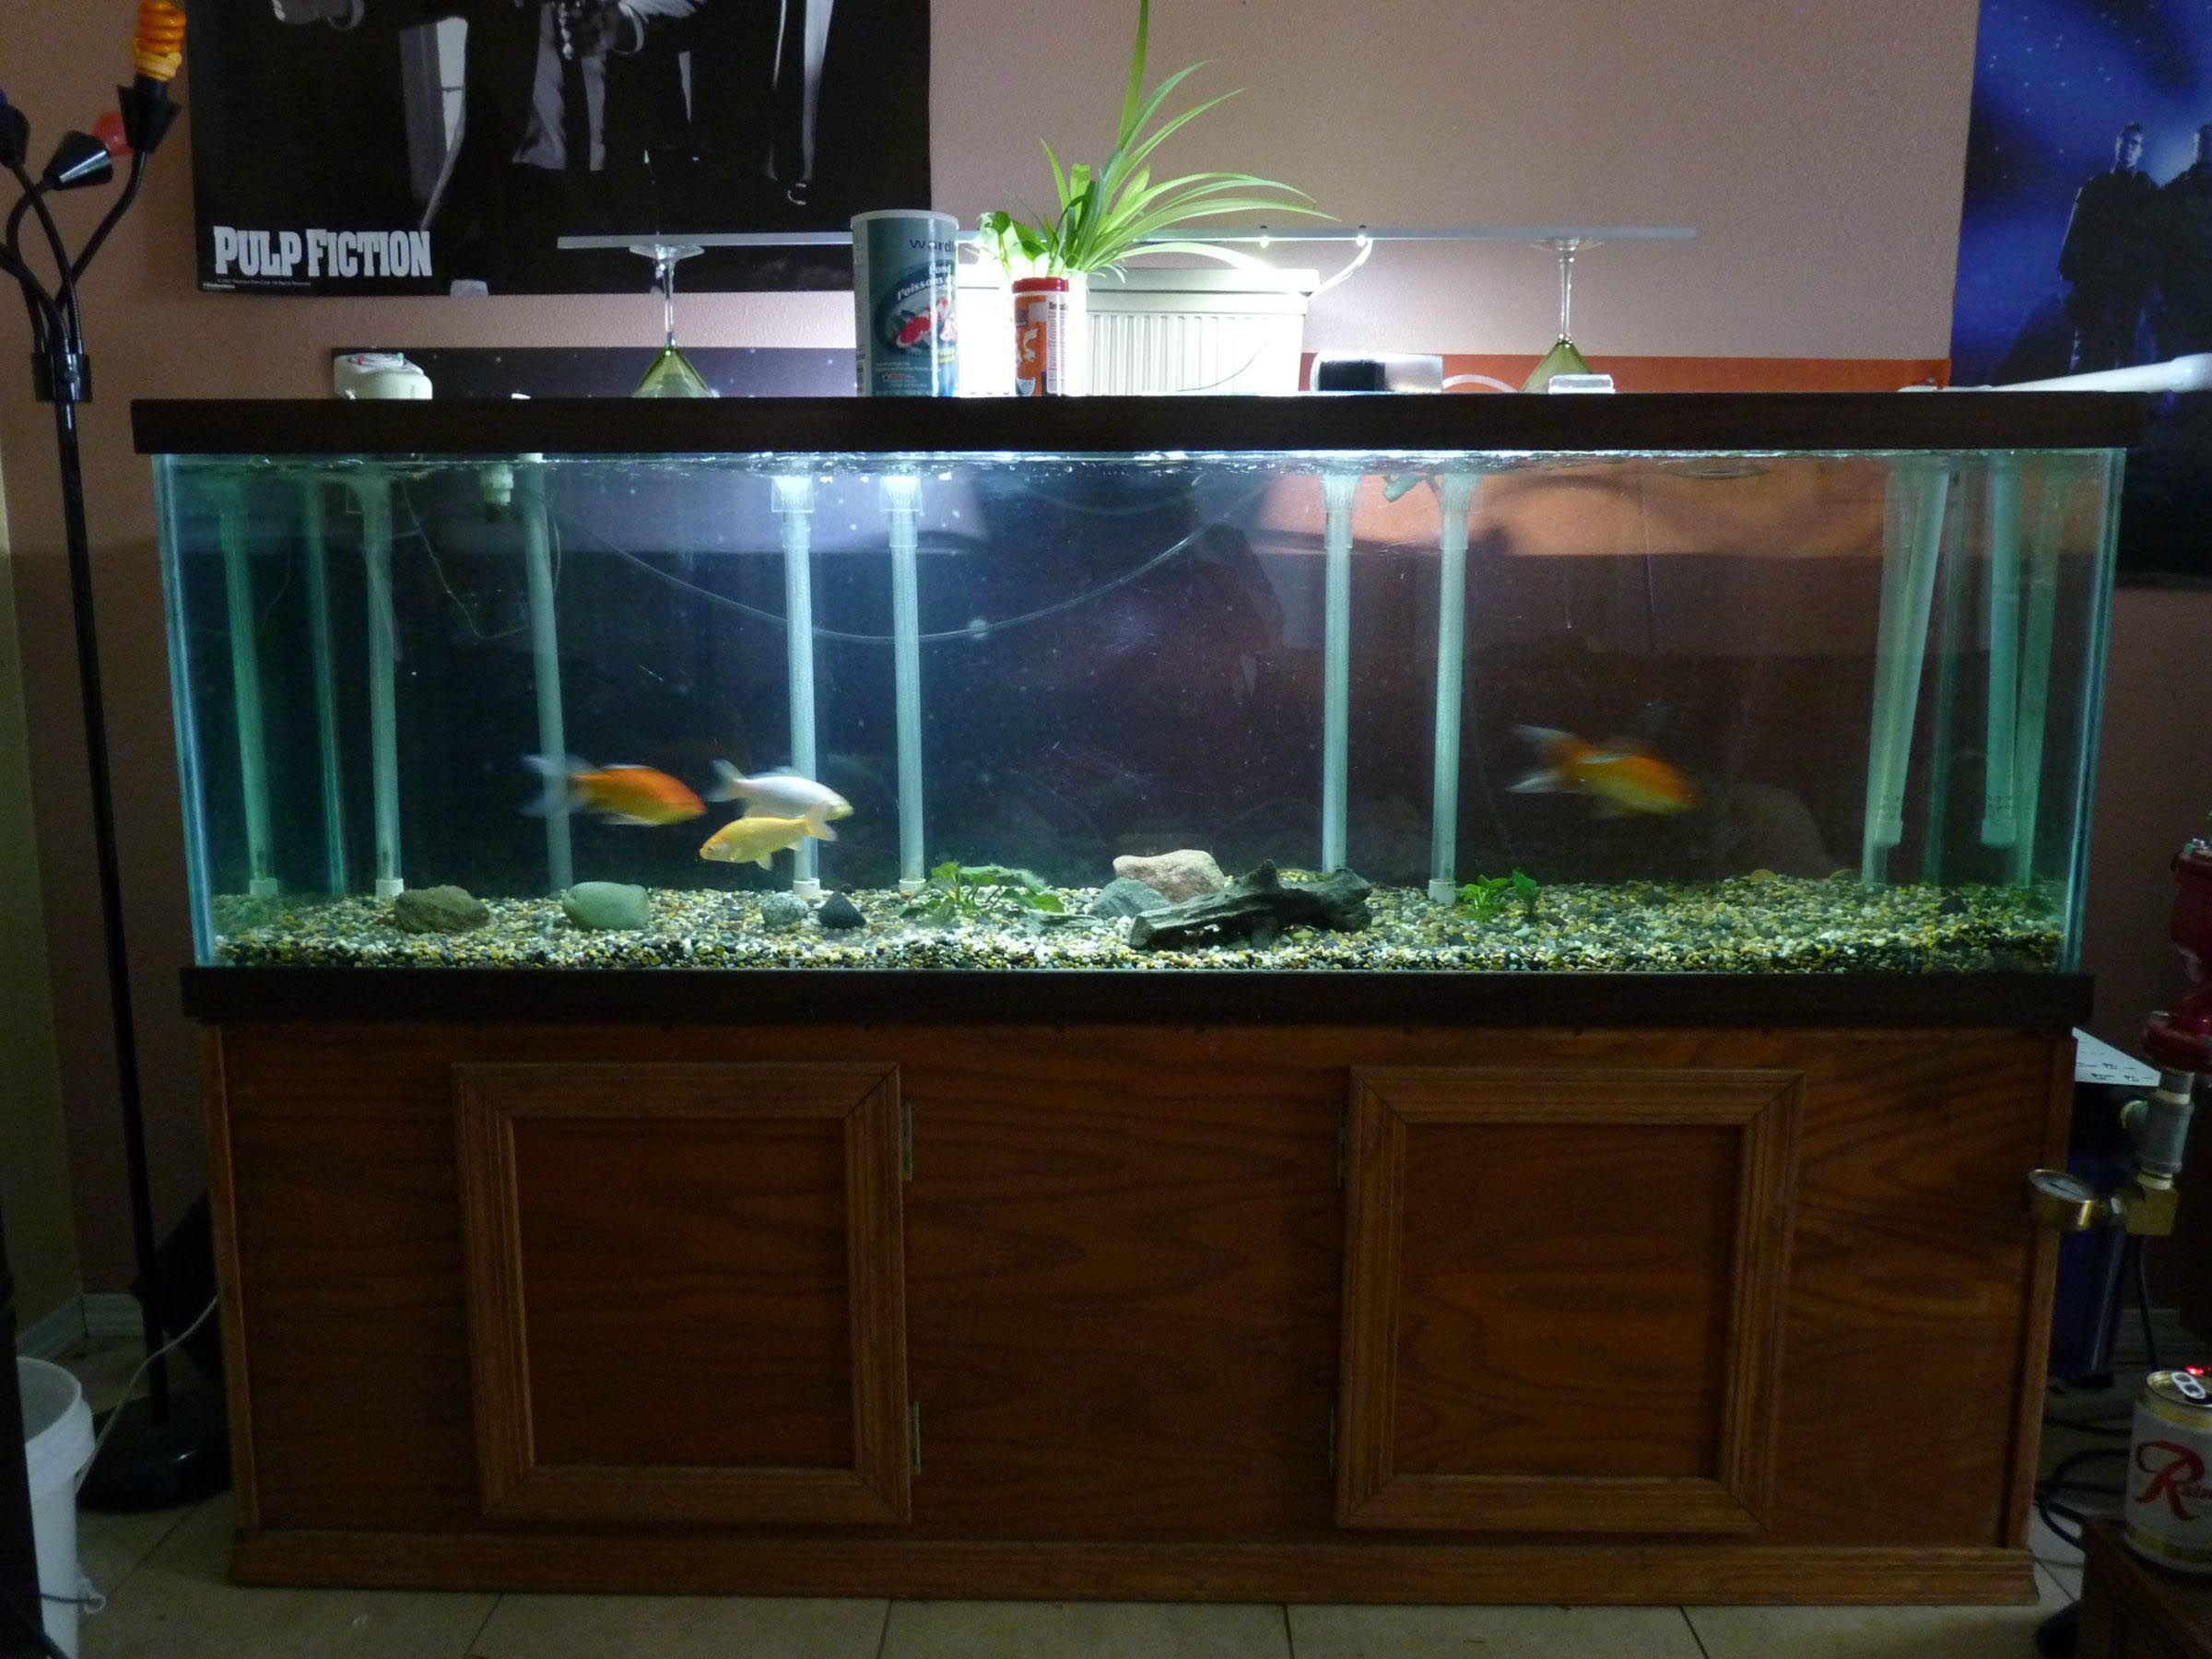 100 gallons aquarium size aquarium ideas pinterest for 75 gallon fish tank dimensions